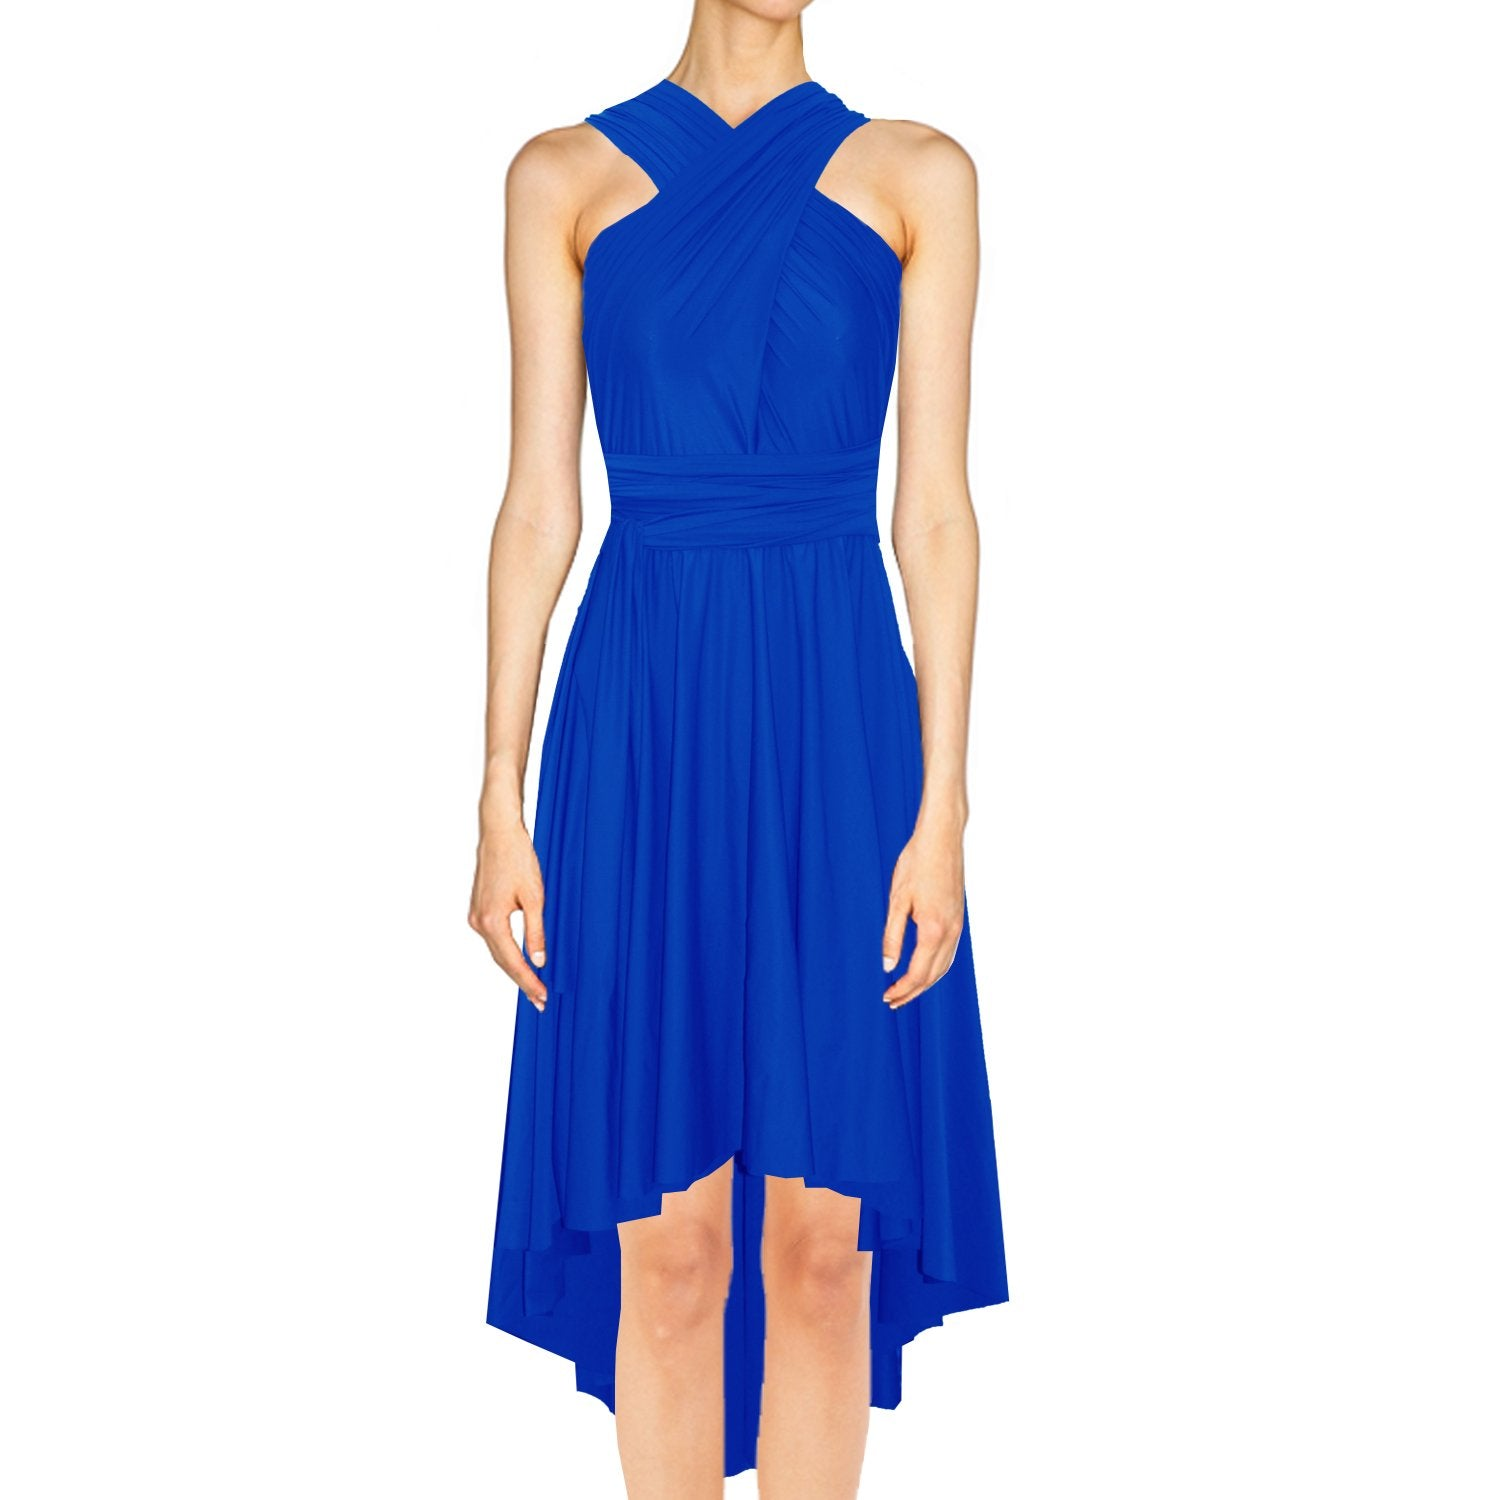 High low infinity bridesmaid dress Royal blue convertible gown for prom evening & formal occasions XS-5XL